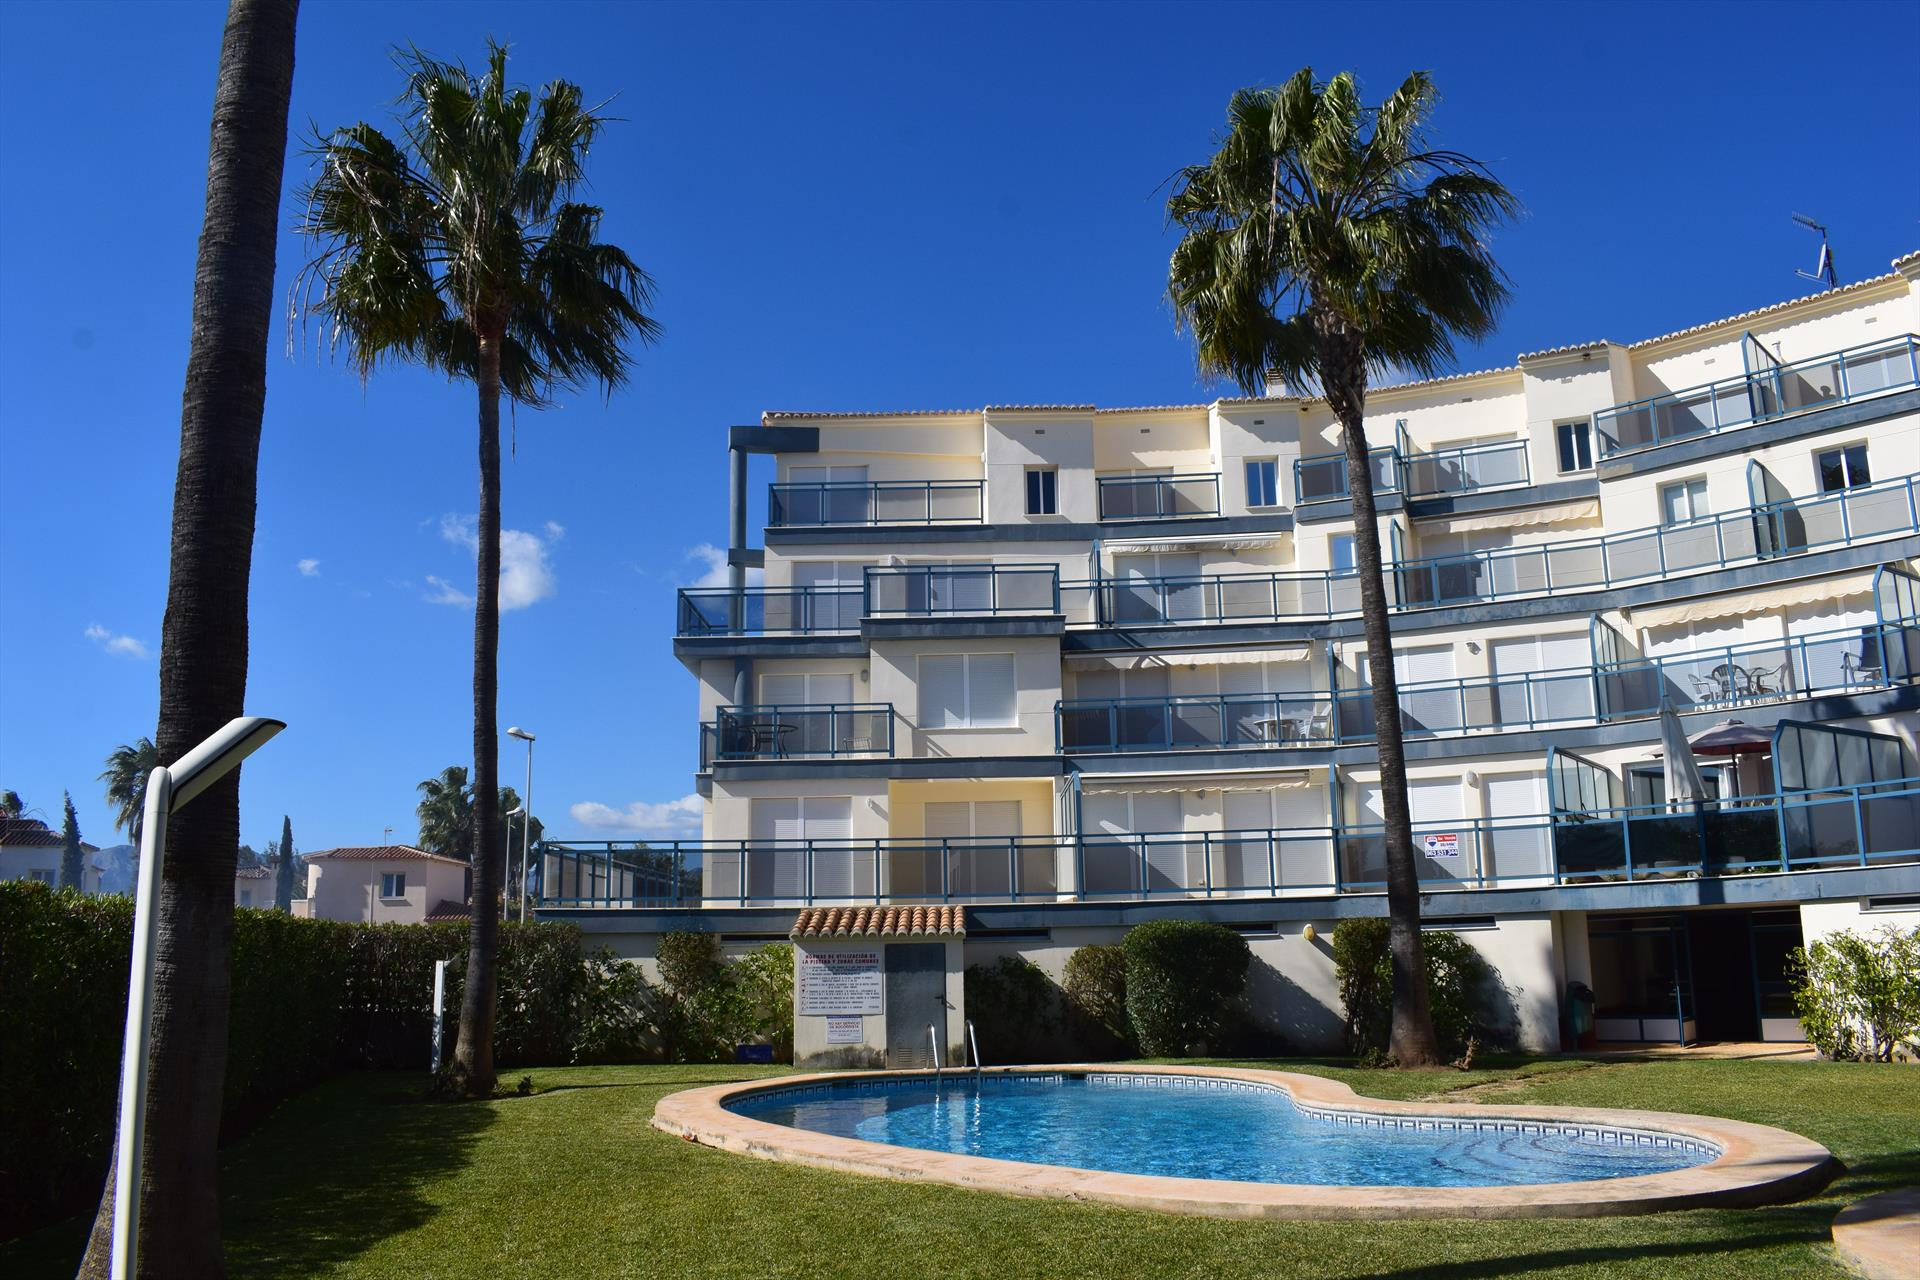 DUP306 Green Beach Oliva Nova, Beautiful and cheerful holiday house in Oliva, on the Costa Blanca, Spain  with communal pool for 5 persons.....